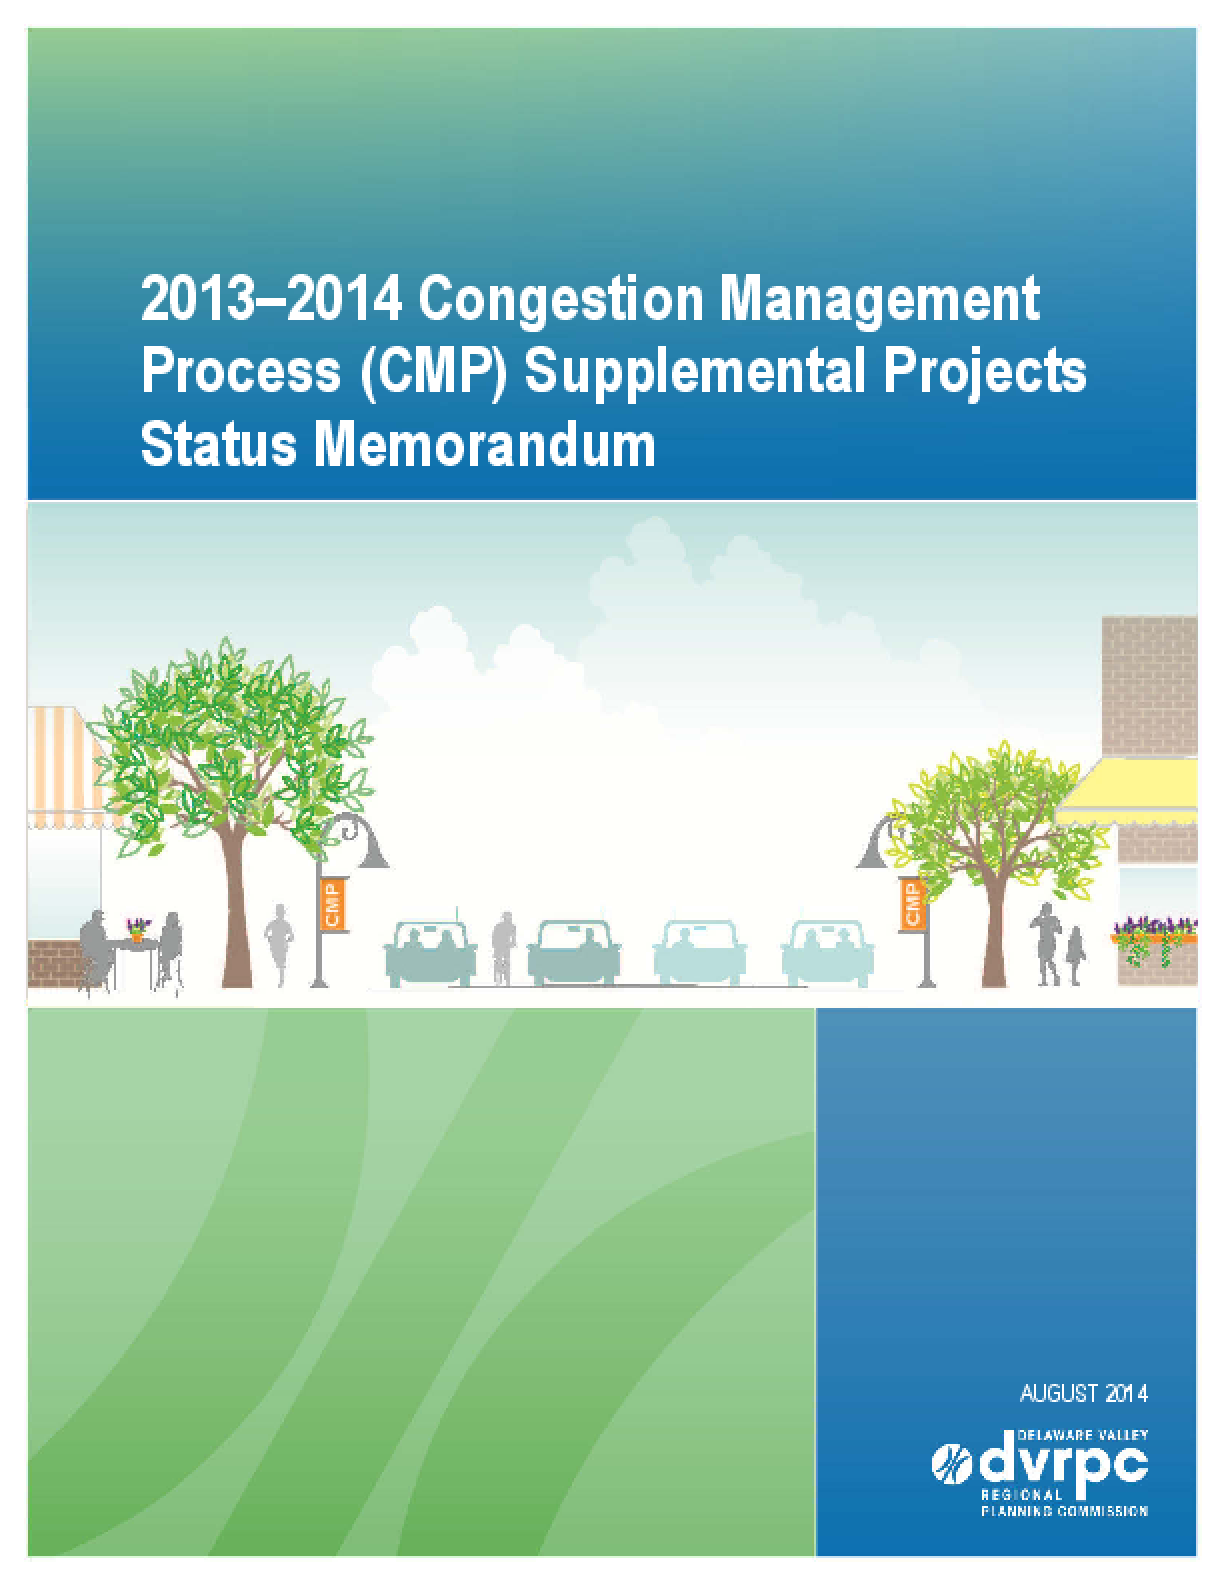 2013-2014 Congestion Management Process (CMP) Supplemental Projects Status Memorandum